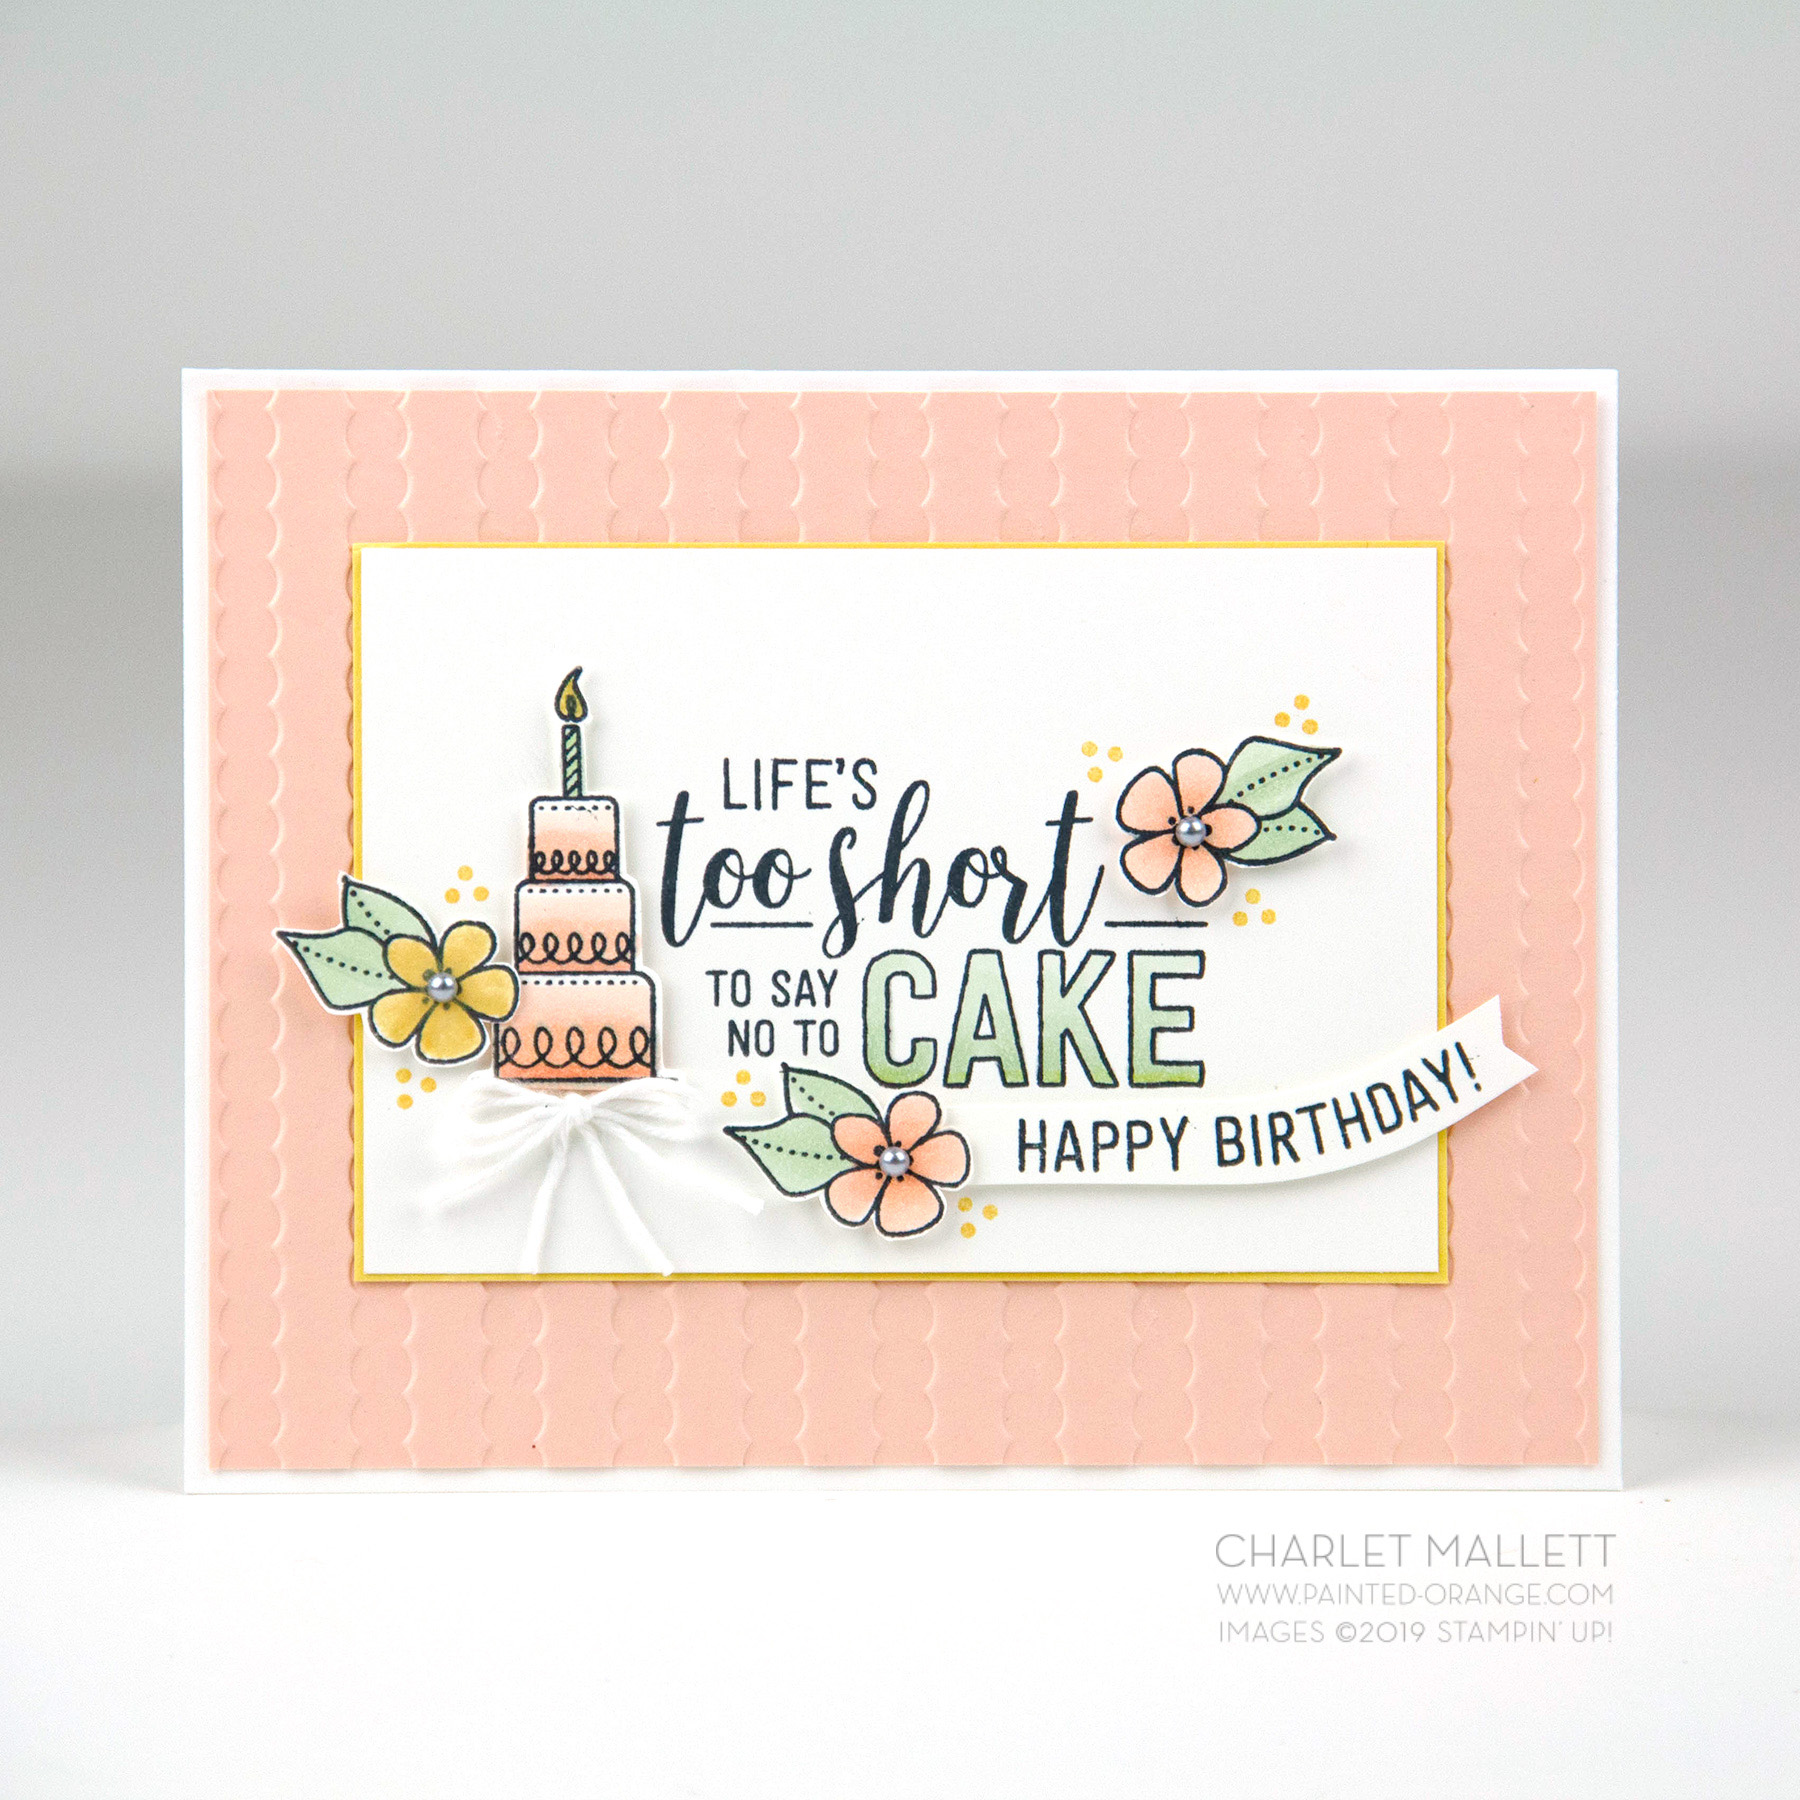 Birthday Card using Amazing Life stamp set - Stampin' Up! Charlet Mallett